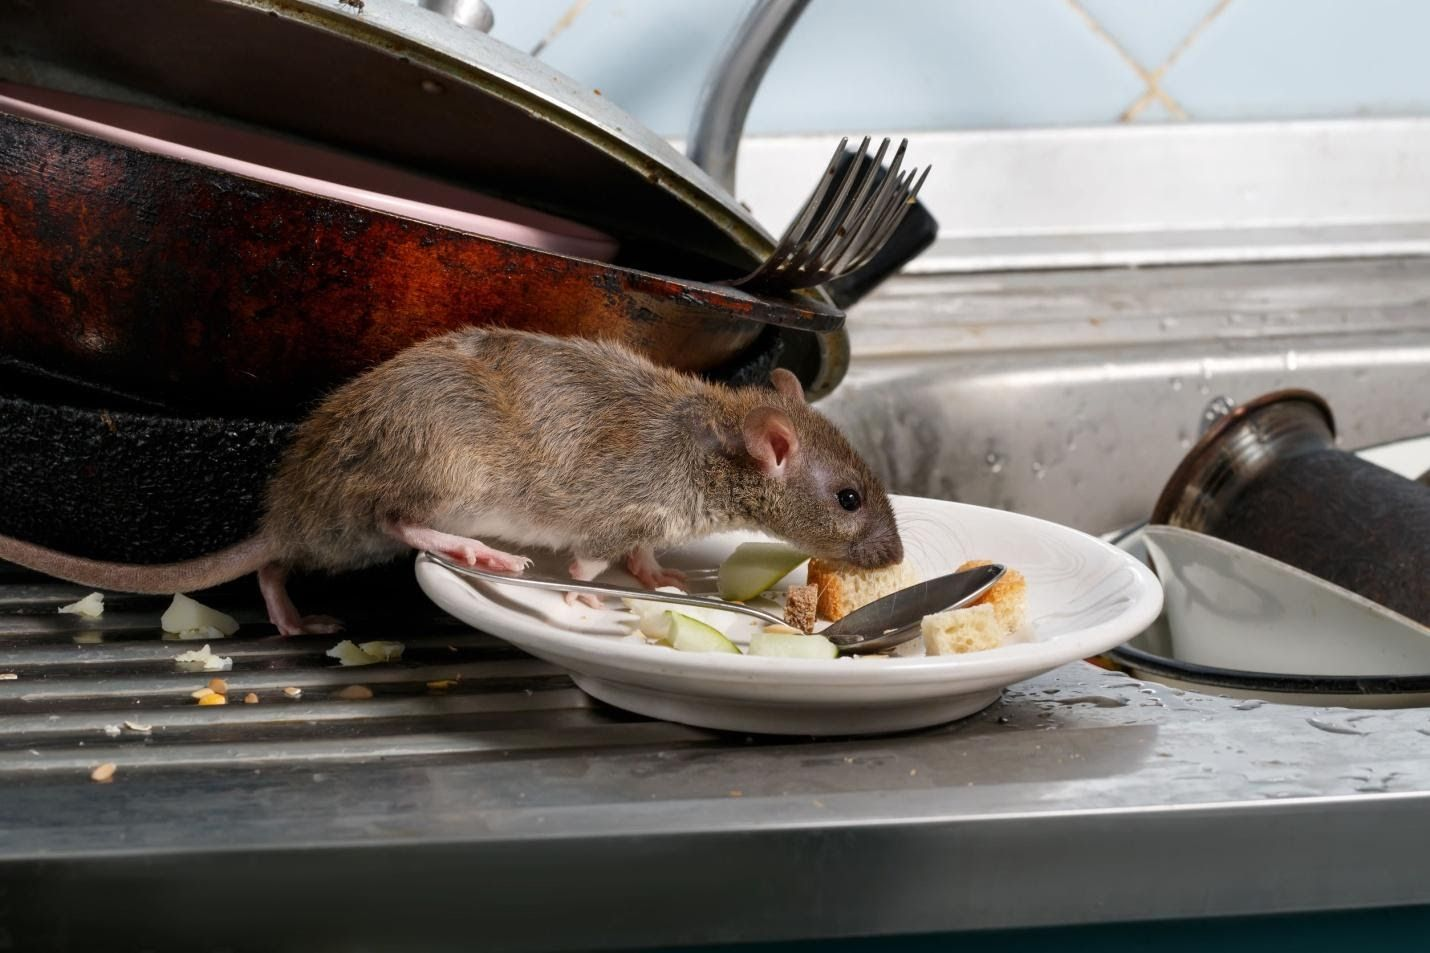 Pin By Supol Suttikarn On Jcpest In 2020 Rodent Problem Rodents Getting Rid Of Rats